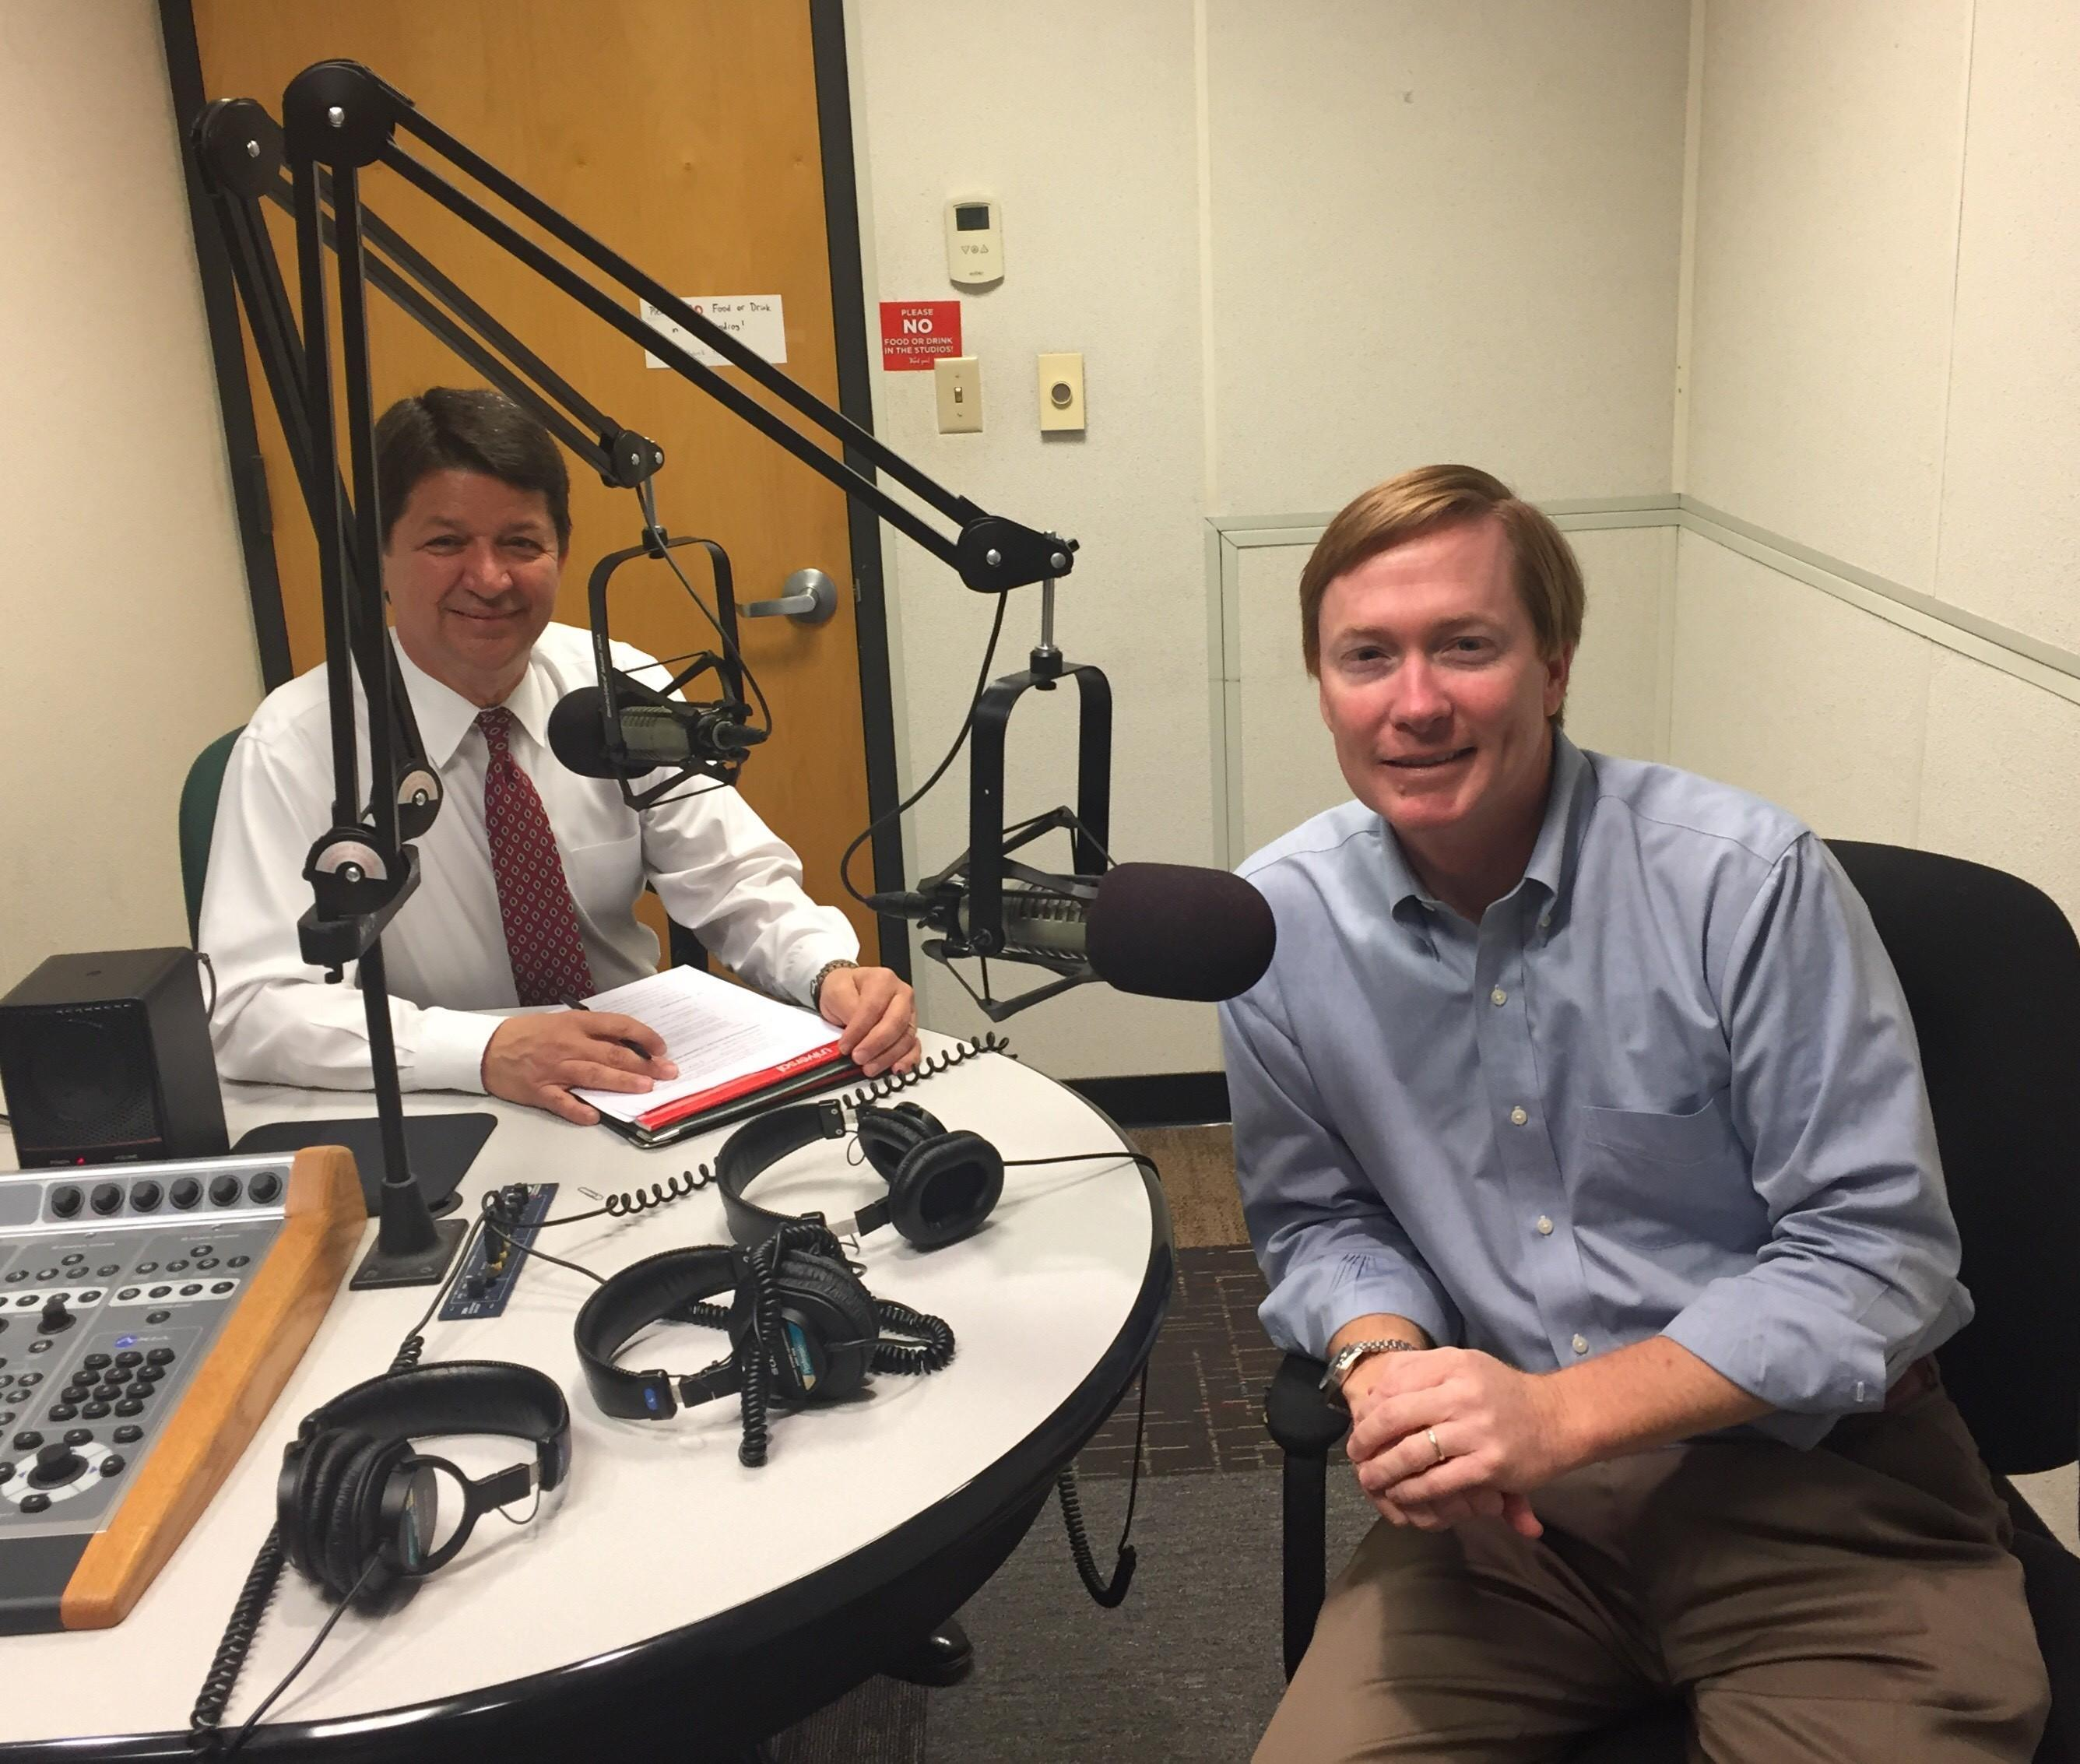 The Honorable Adam Putnam